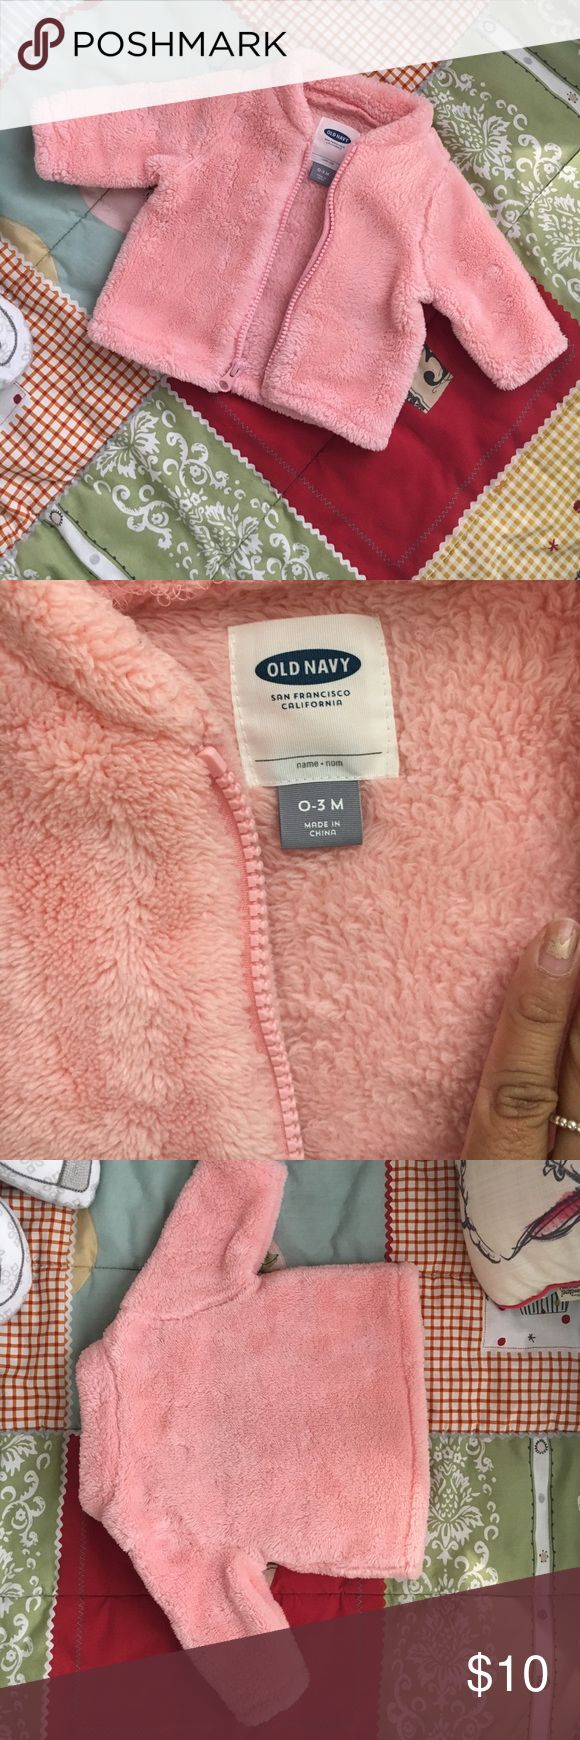 Old navy fleece sweater Old navy fleece sweater for 0-3 month old baby Old Navy Jackets & Coats Puffers